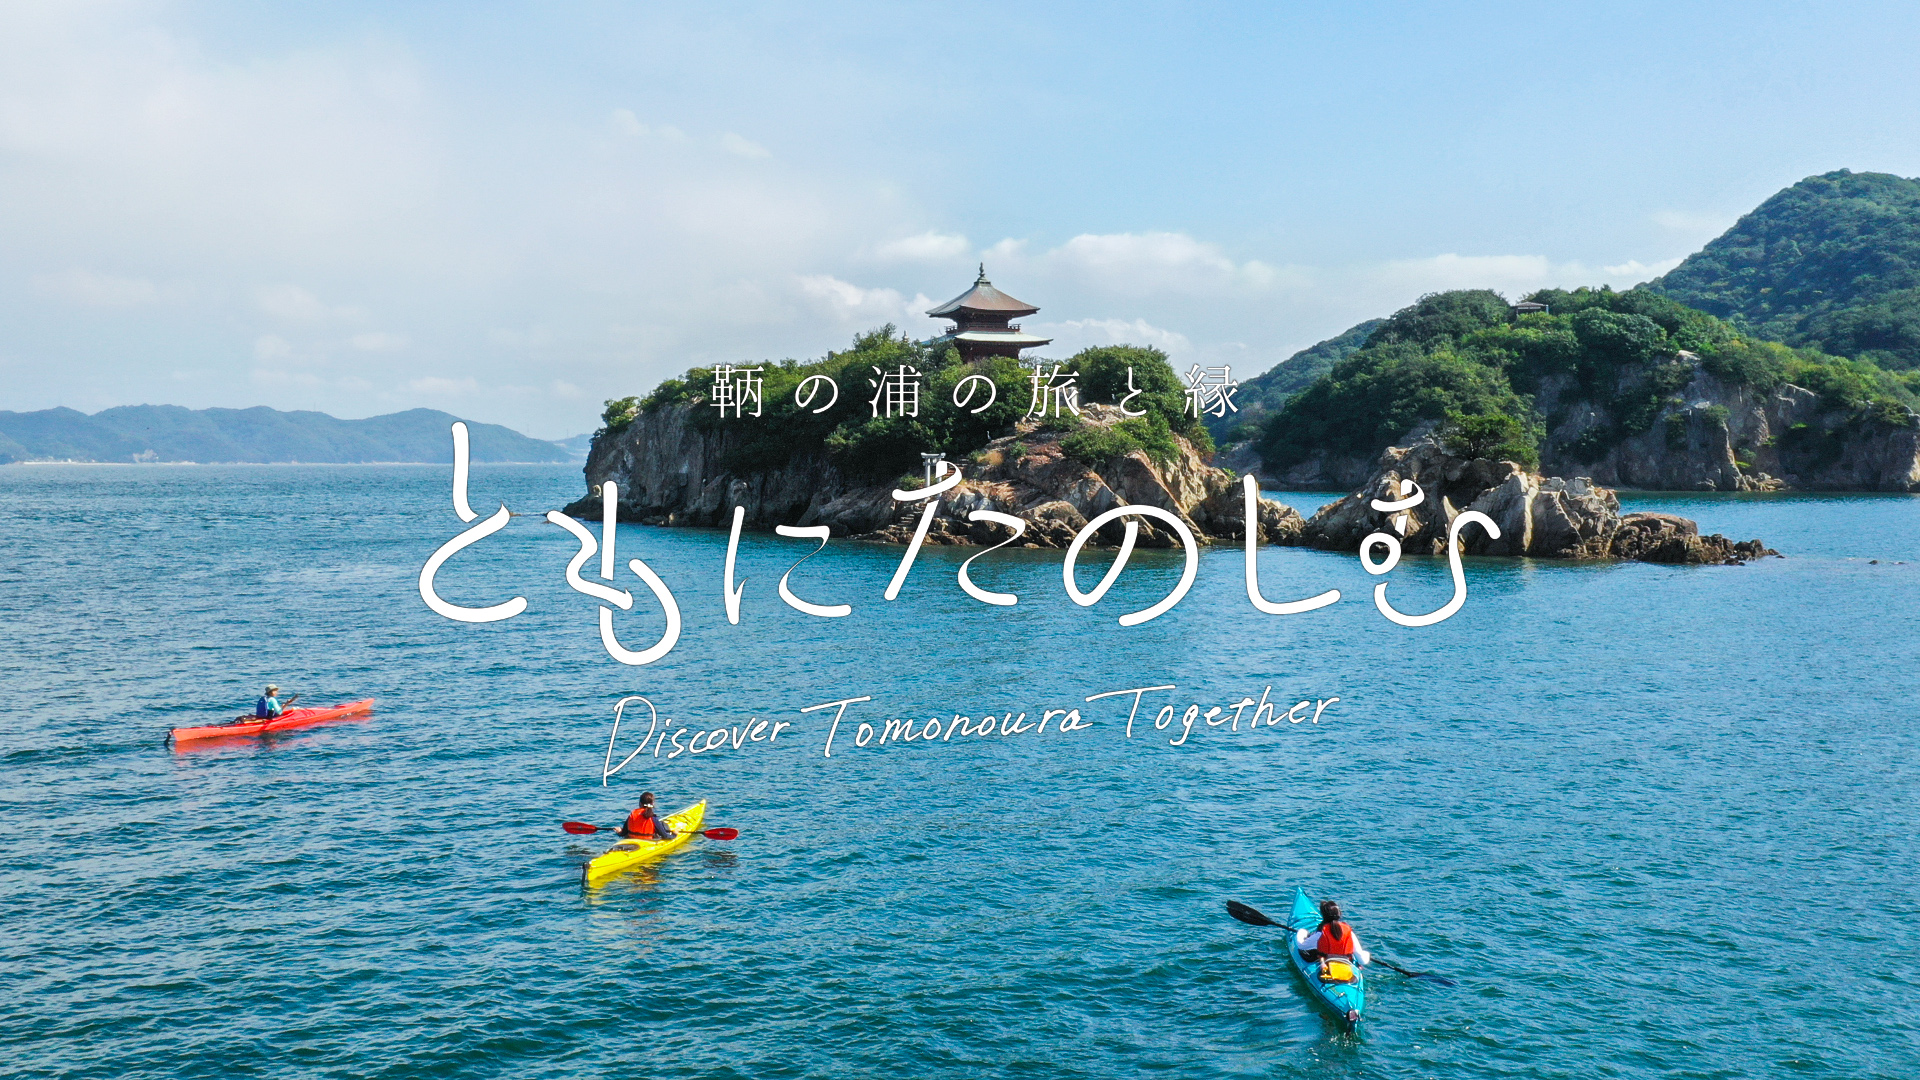 ともにたのしむ Discover Tomonoura Together  -Japanese-